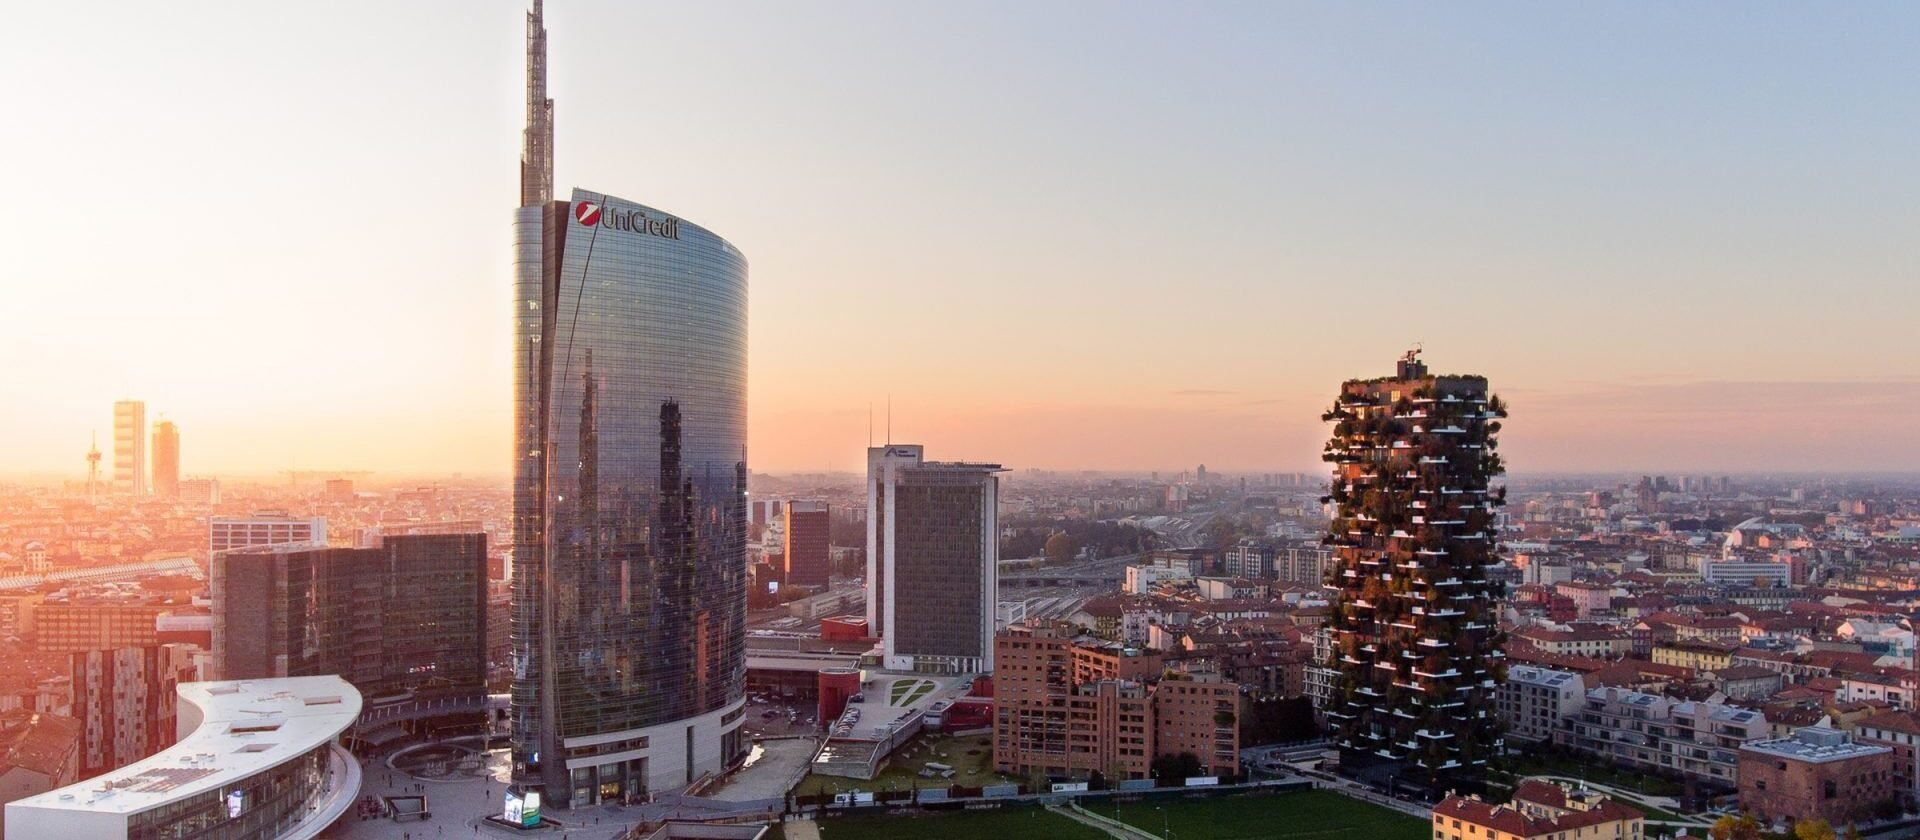 View of the Milan skyline with skyscrapers in the foreground